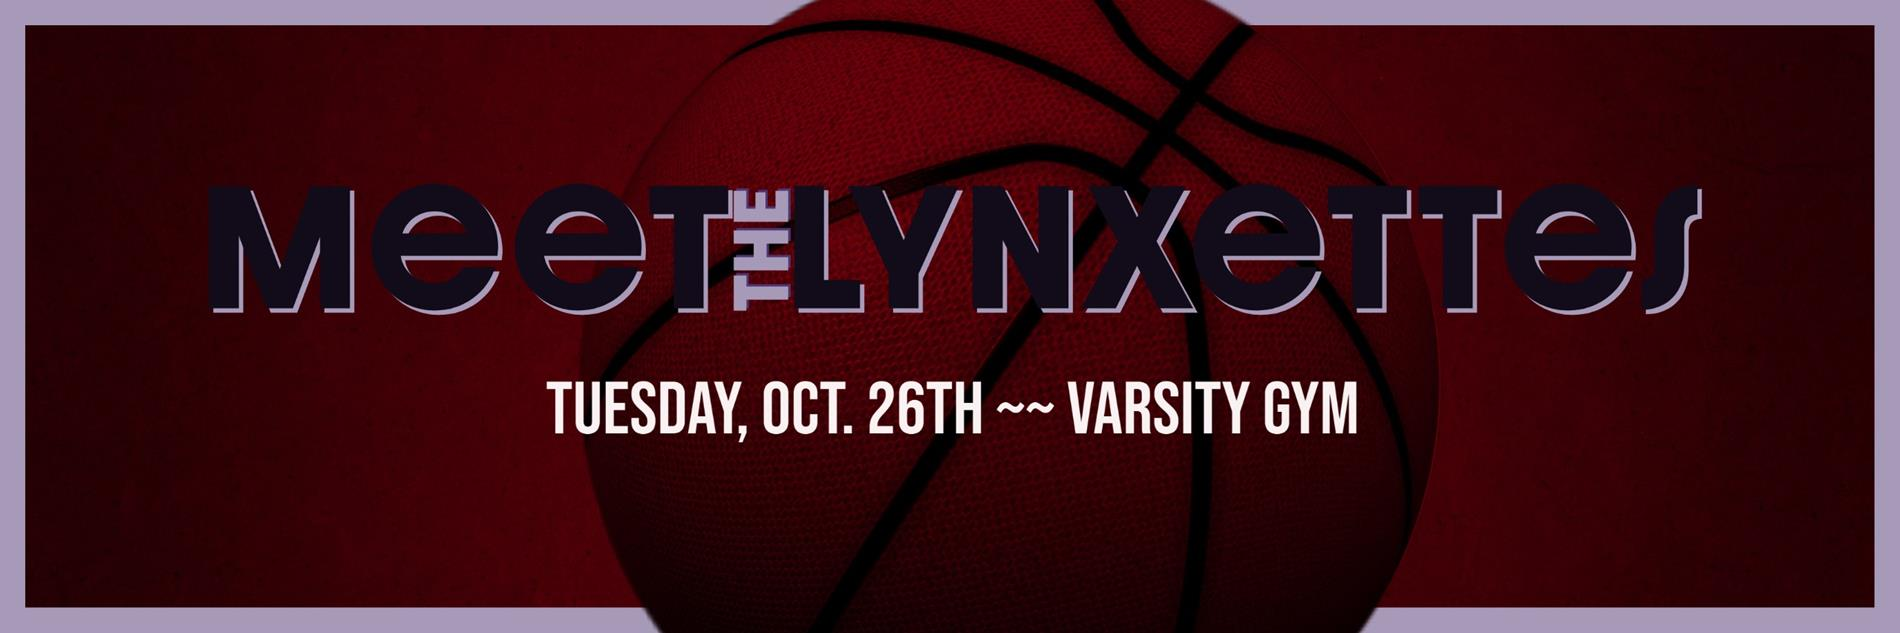 Meet the Lynxettes pic